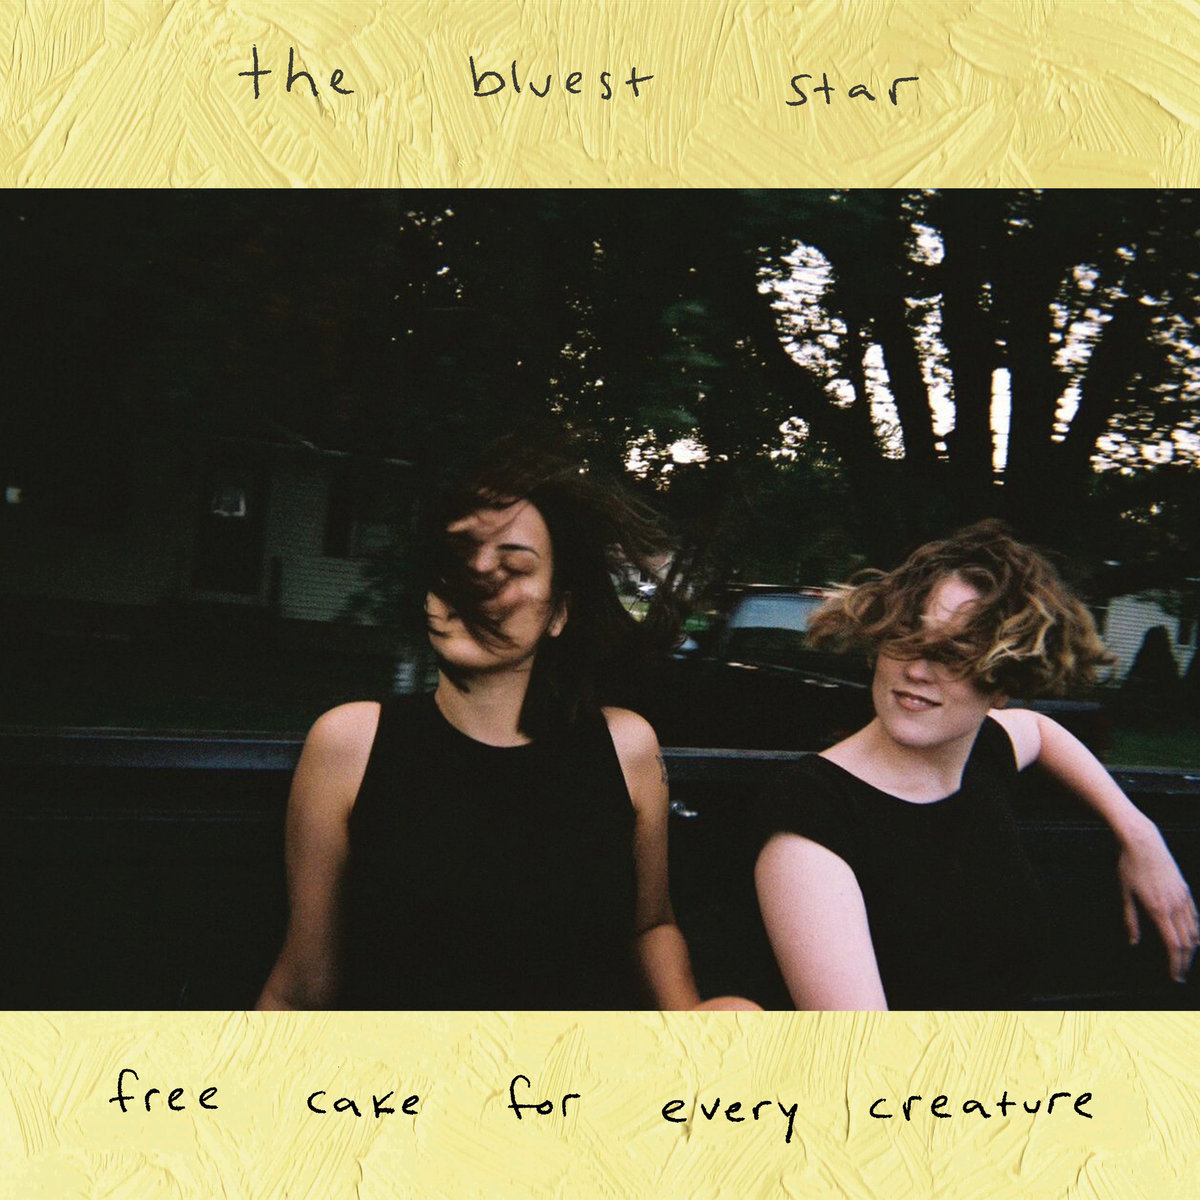 Free Cake For Every Creature The Bluest Star Review For Northern Transmissions